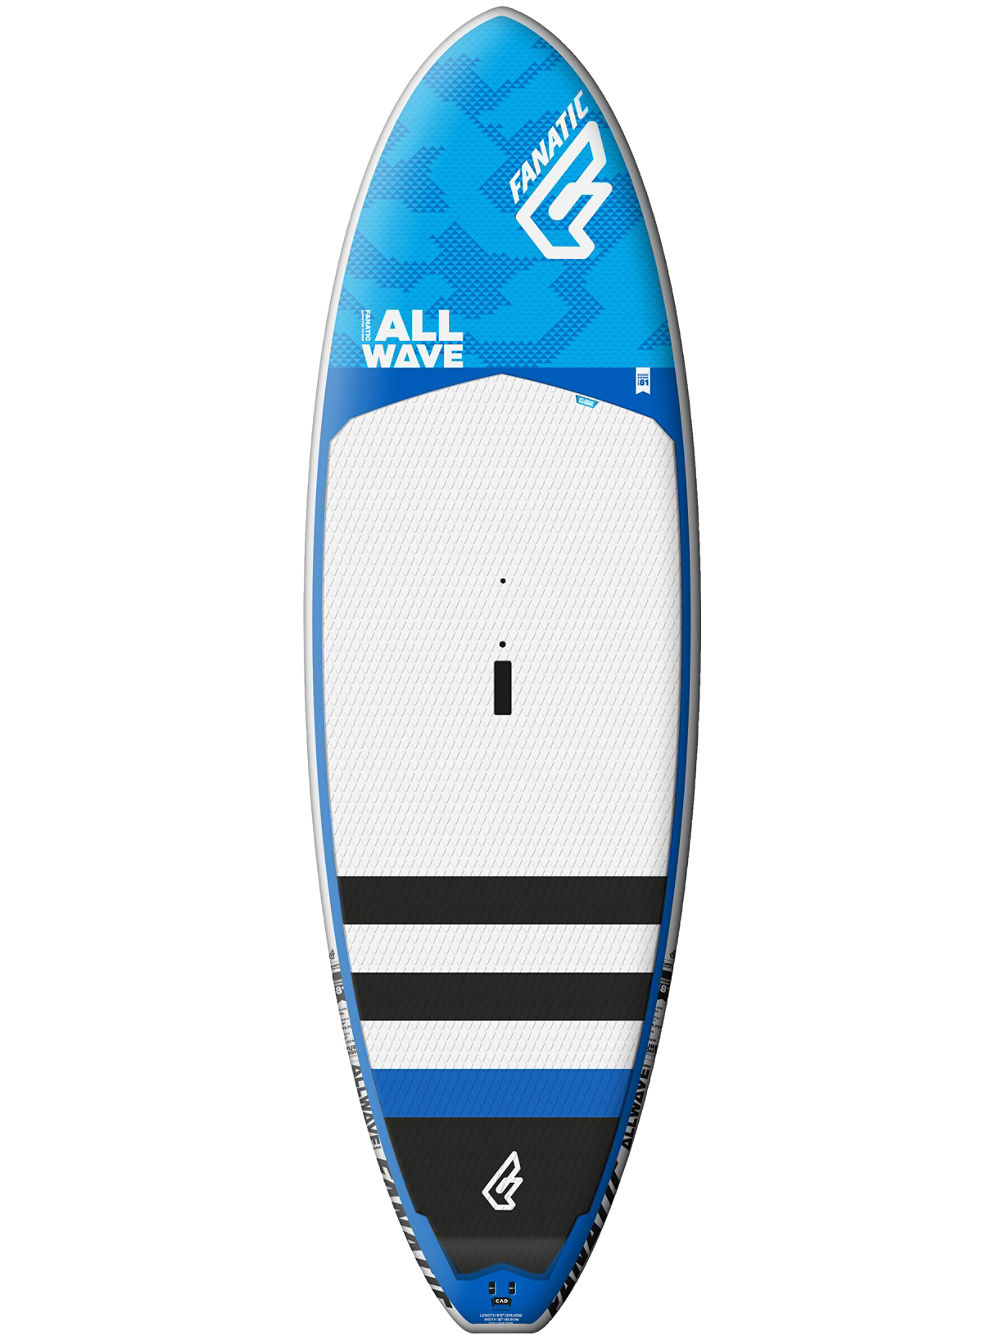 Allwave Pure Light 9.8 SUP Board